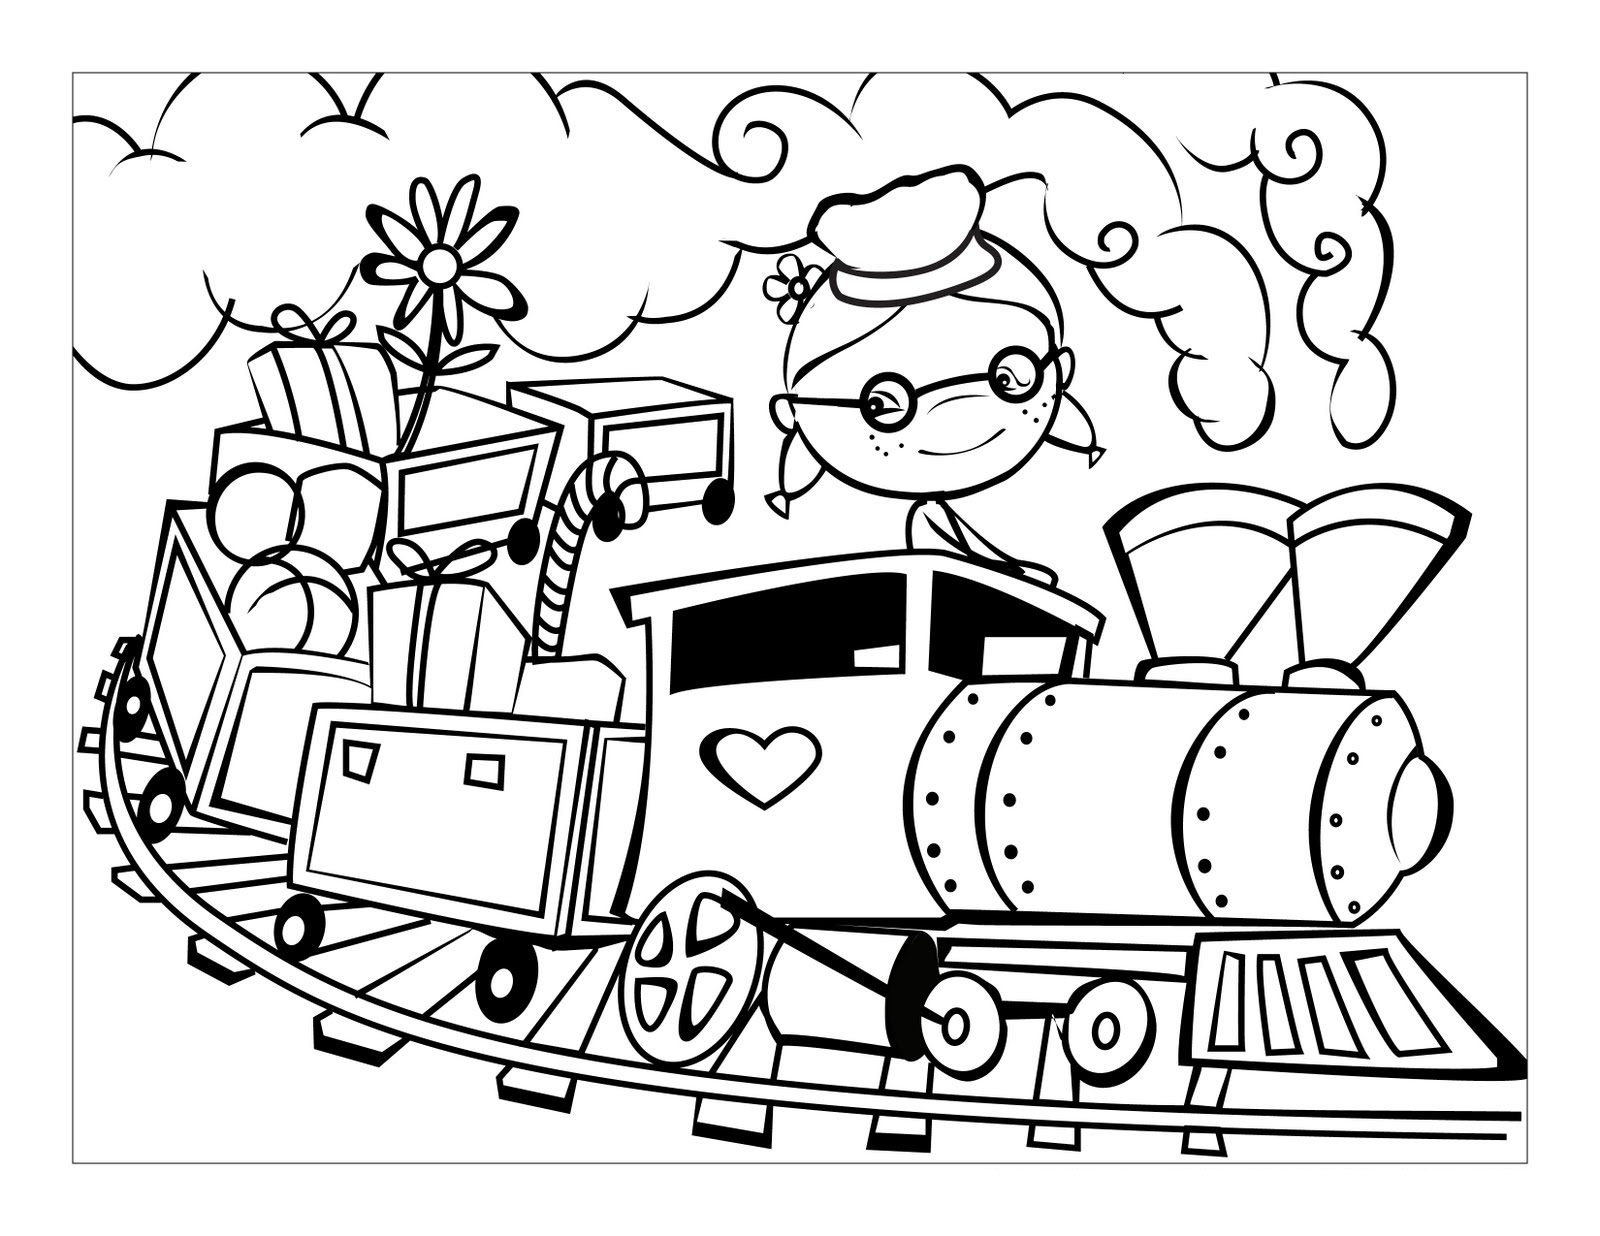 colouring in cars cars coloring pages cool2bkids in colouring cars